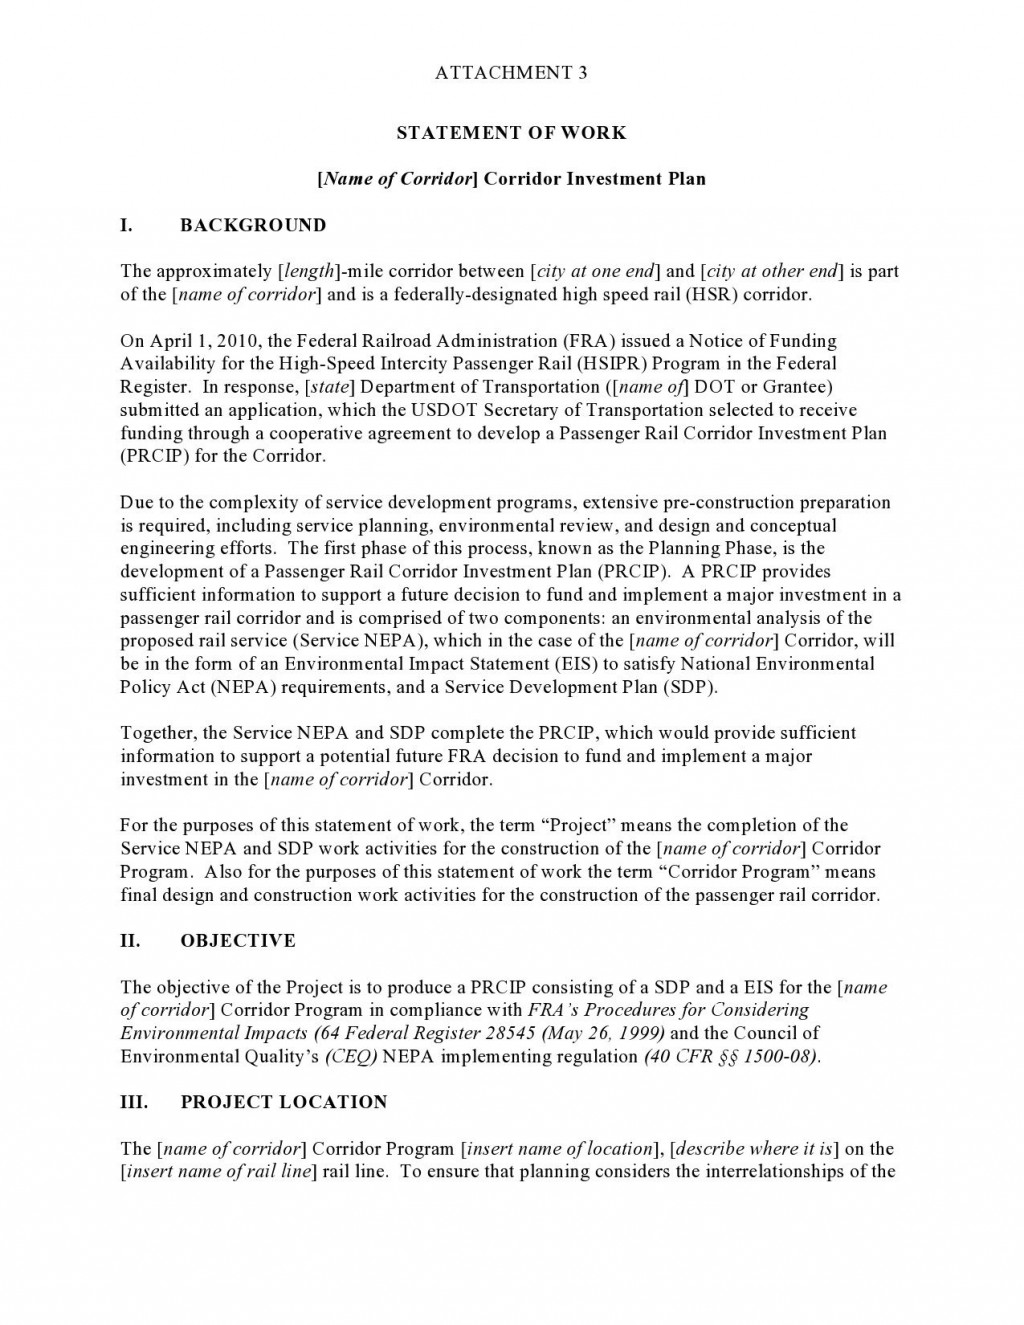 008 Awful Simple Statement Of Work Format Concept Large